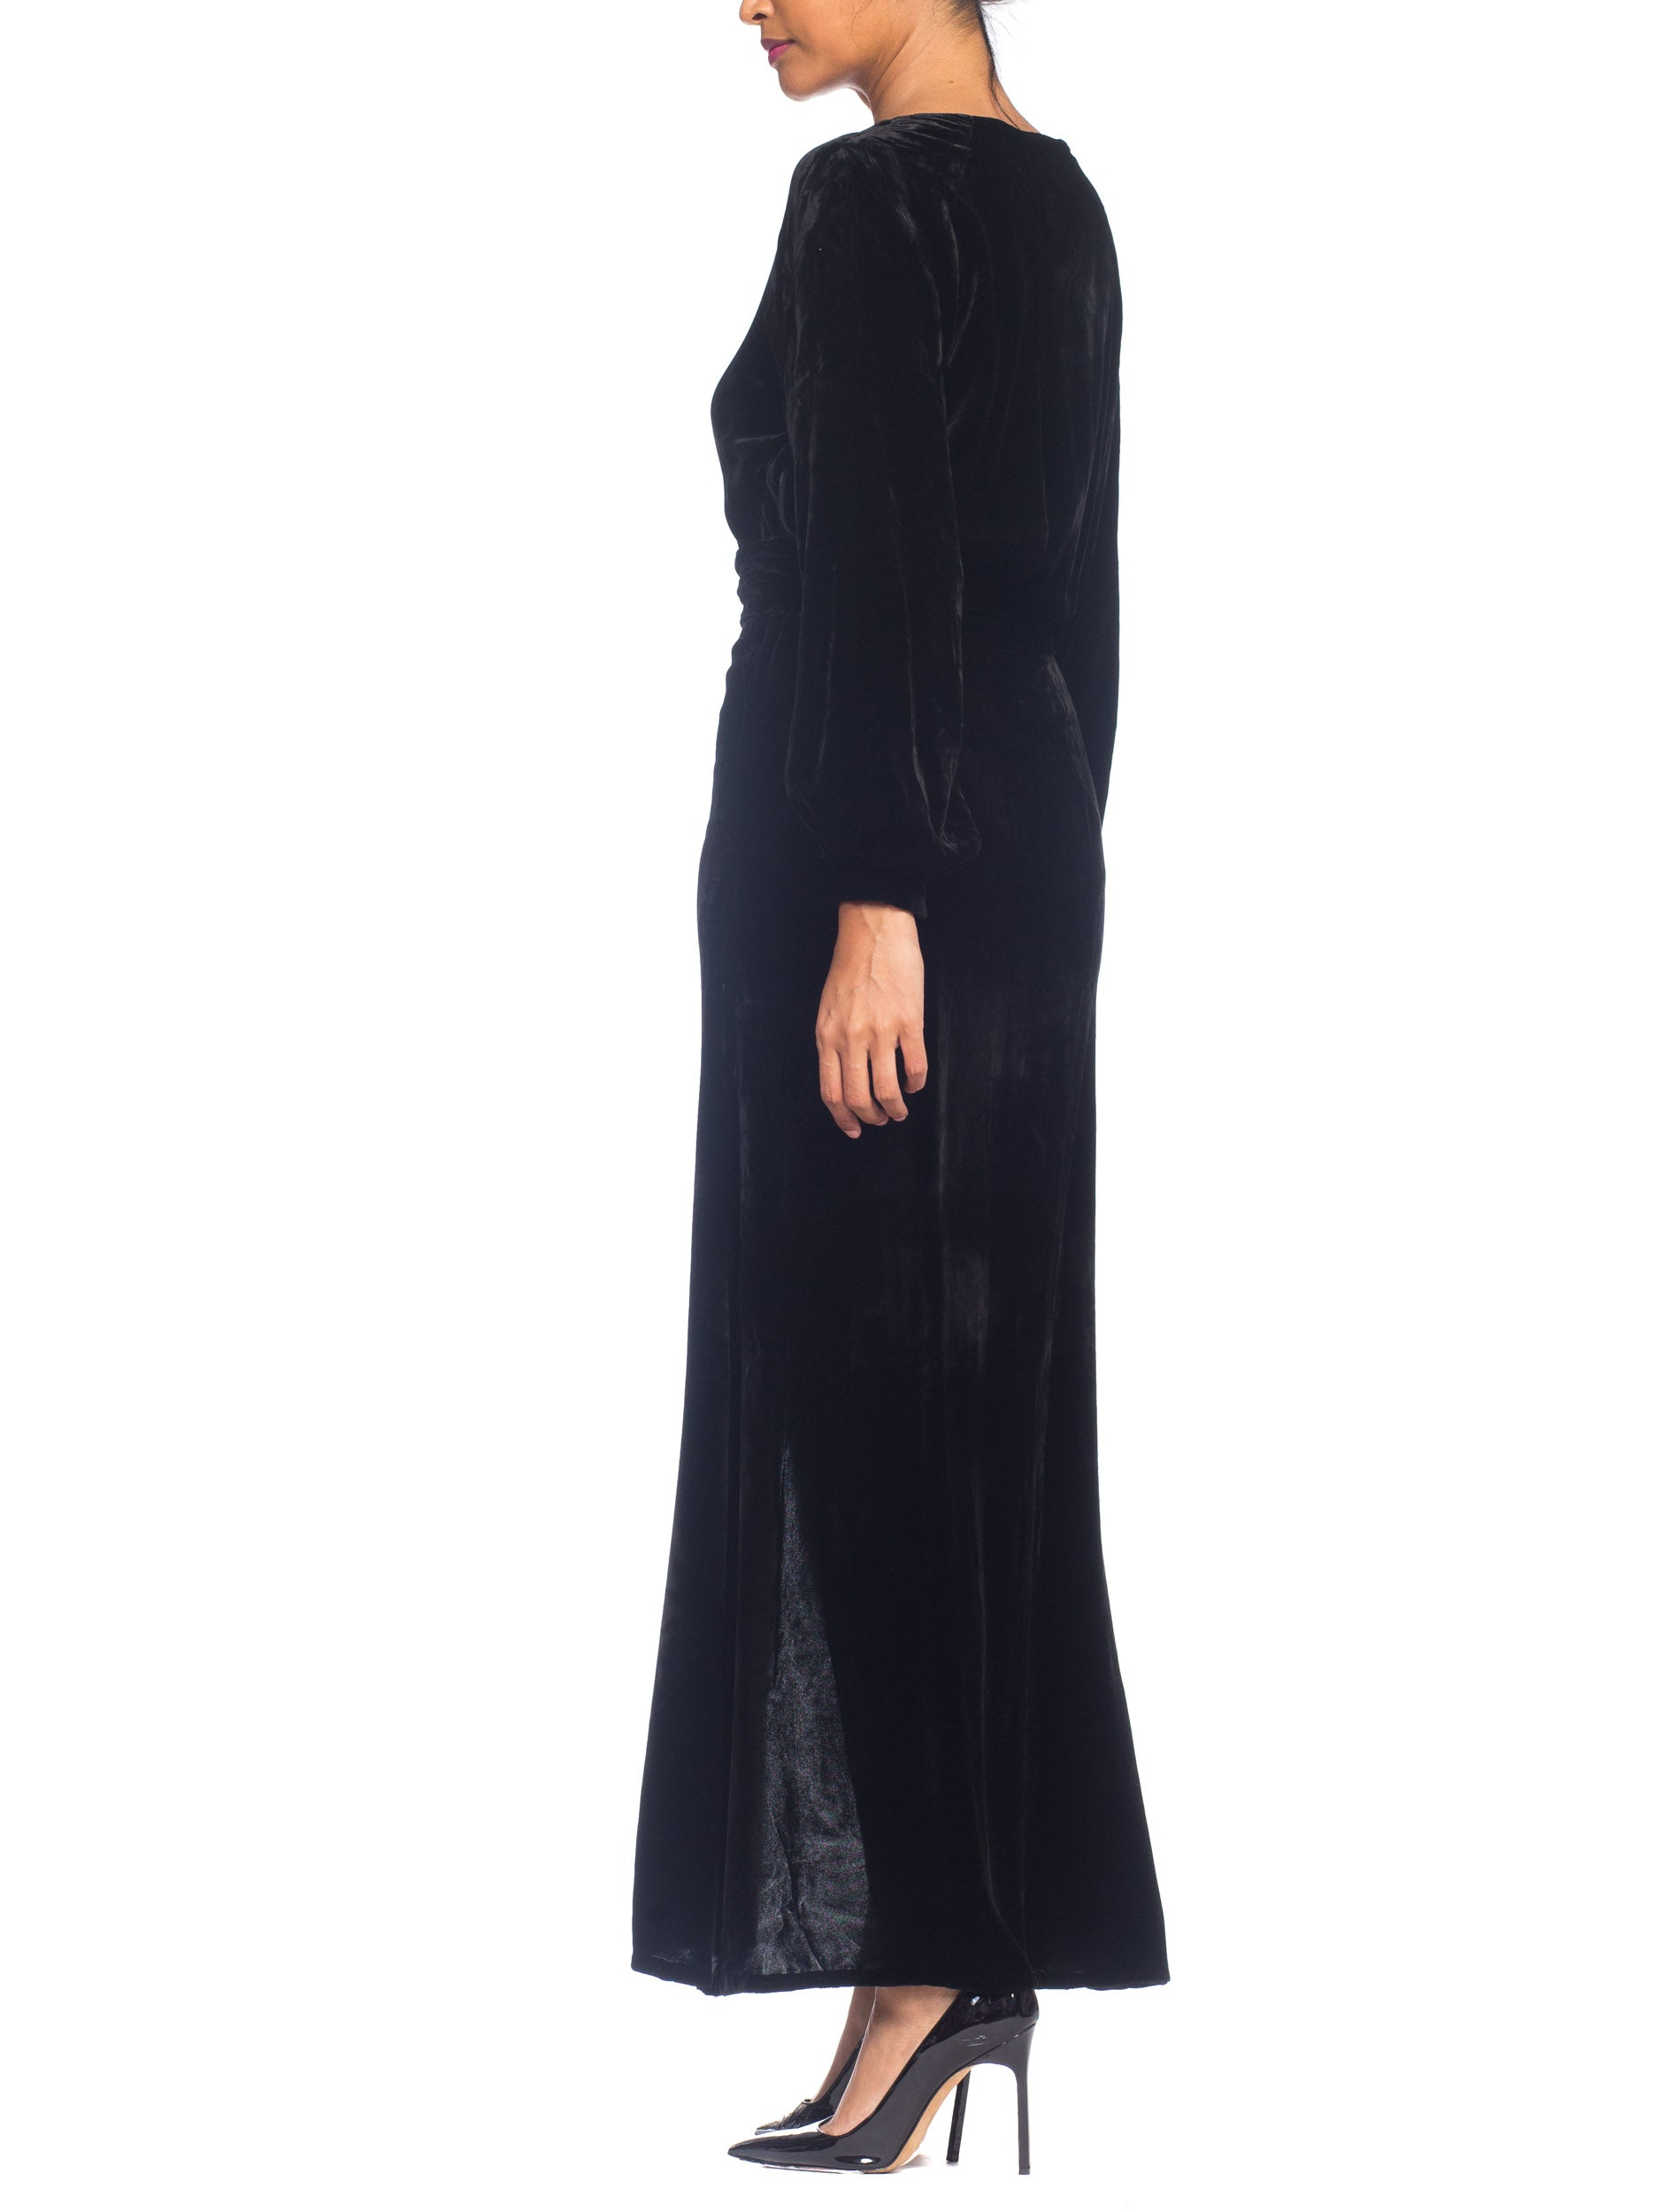 1930S Black Silk Velvet Long Sleeved Gown With Chrome Art Deco Buckle